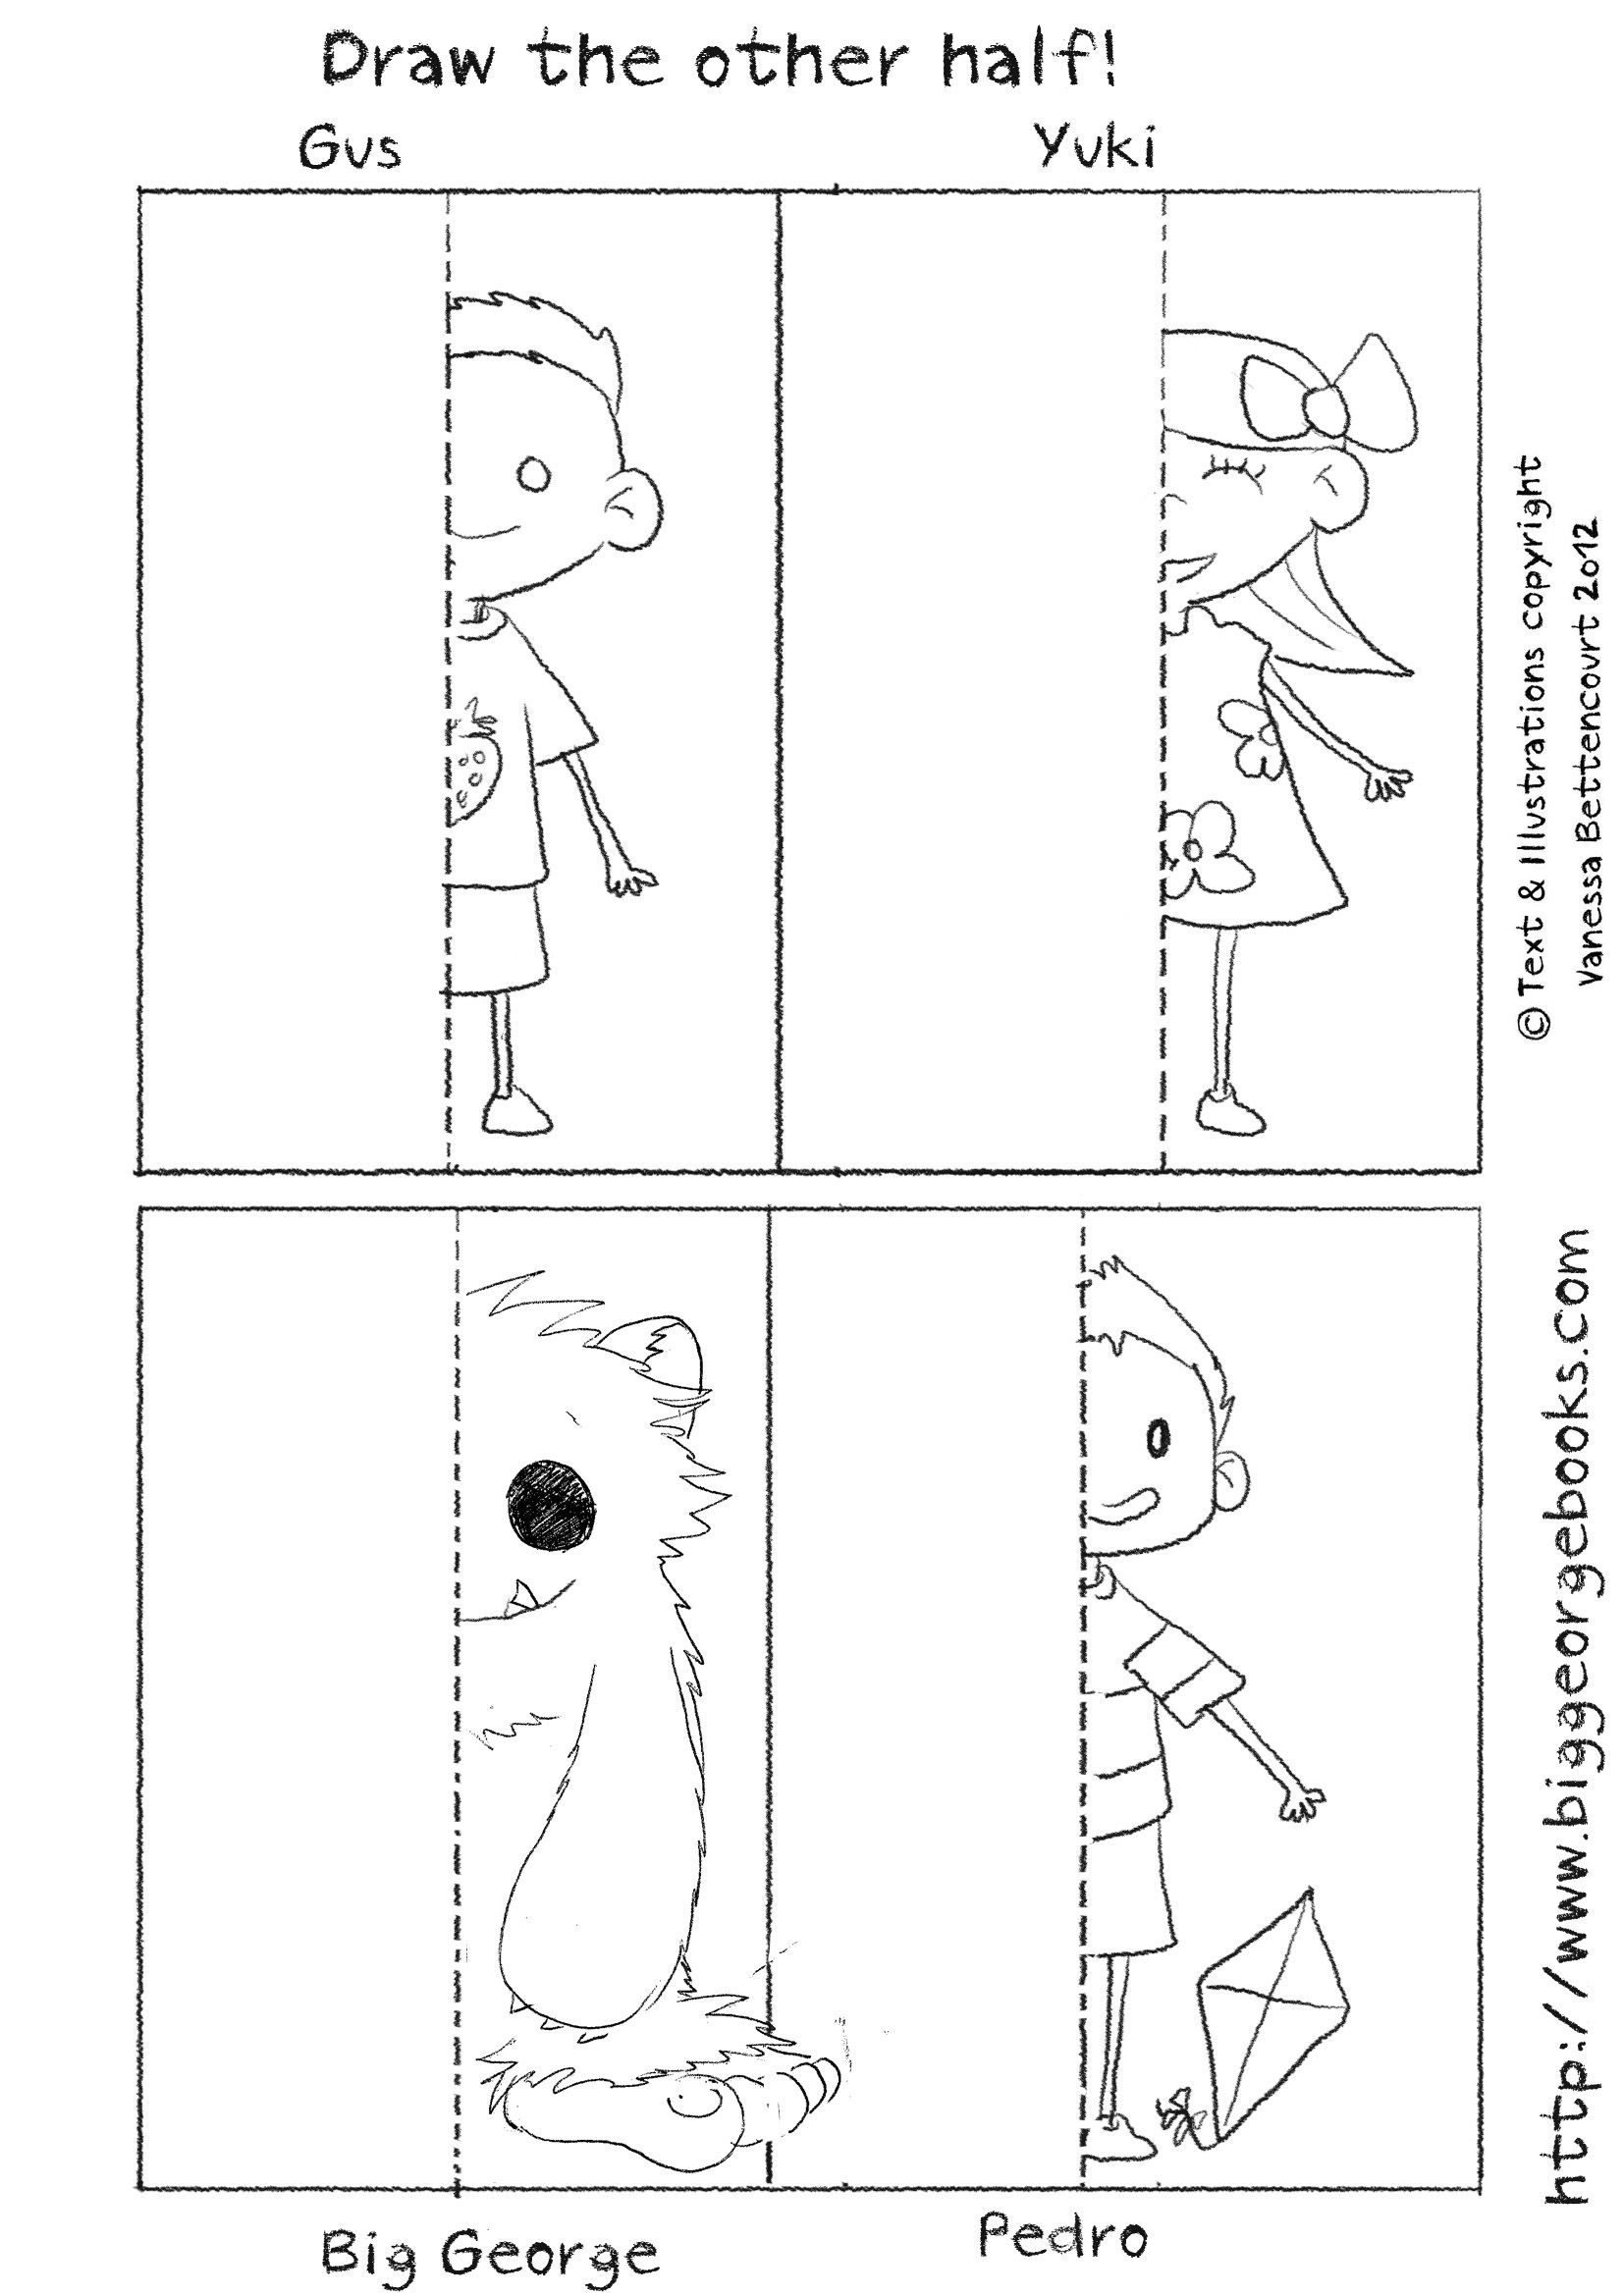 Draw The Other Half Download More Free Worsheets From The Site Drawingactivitiesforkids